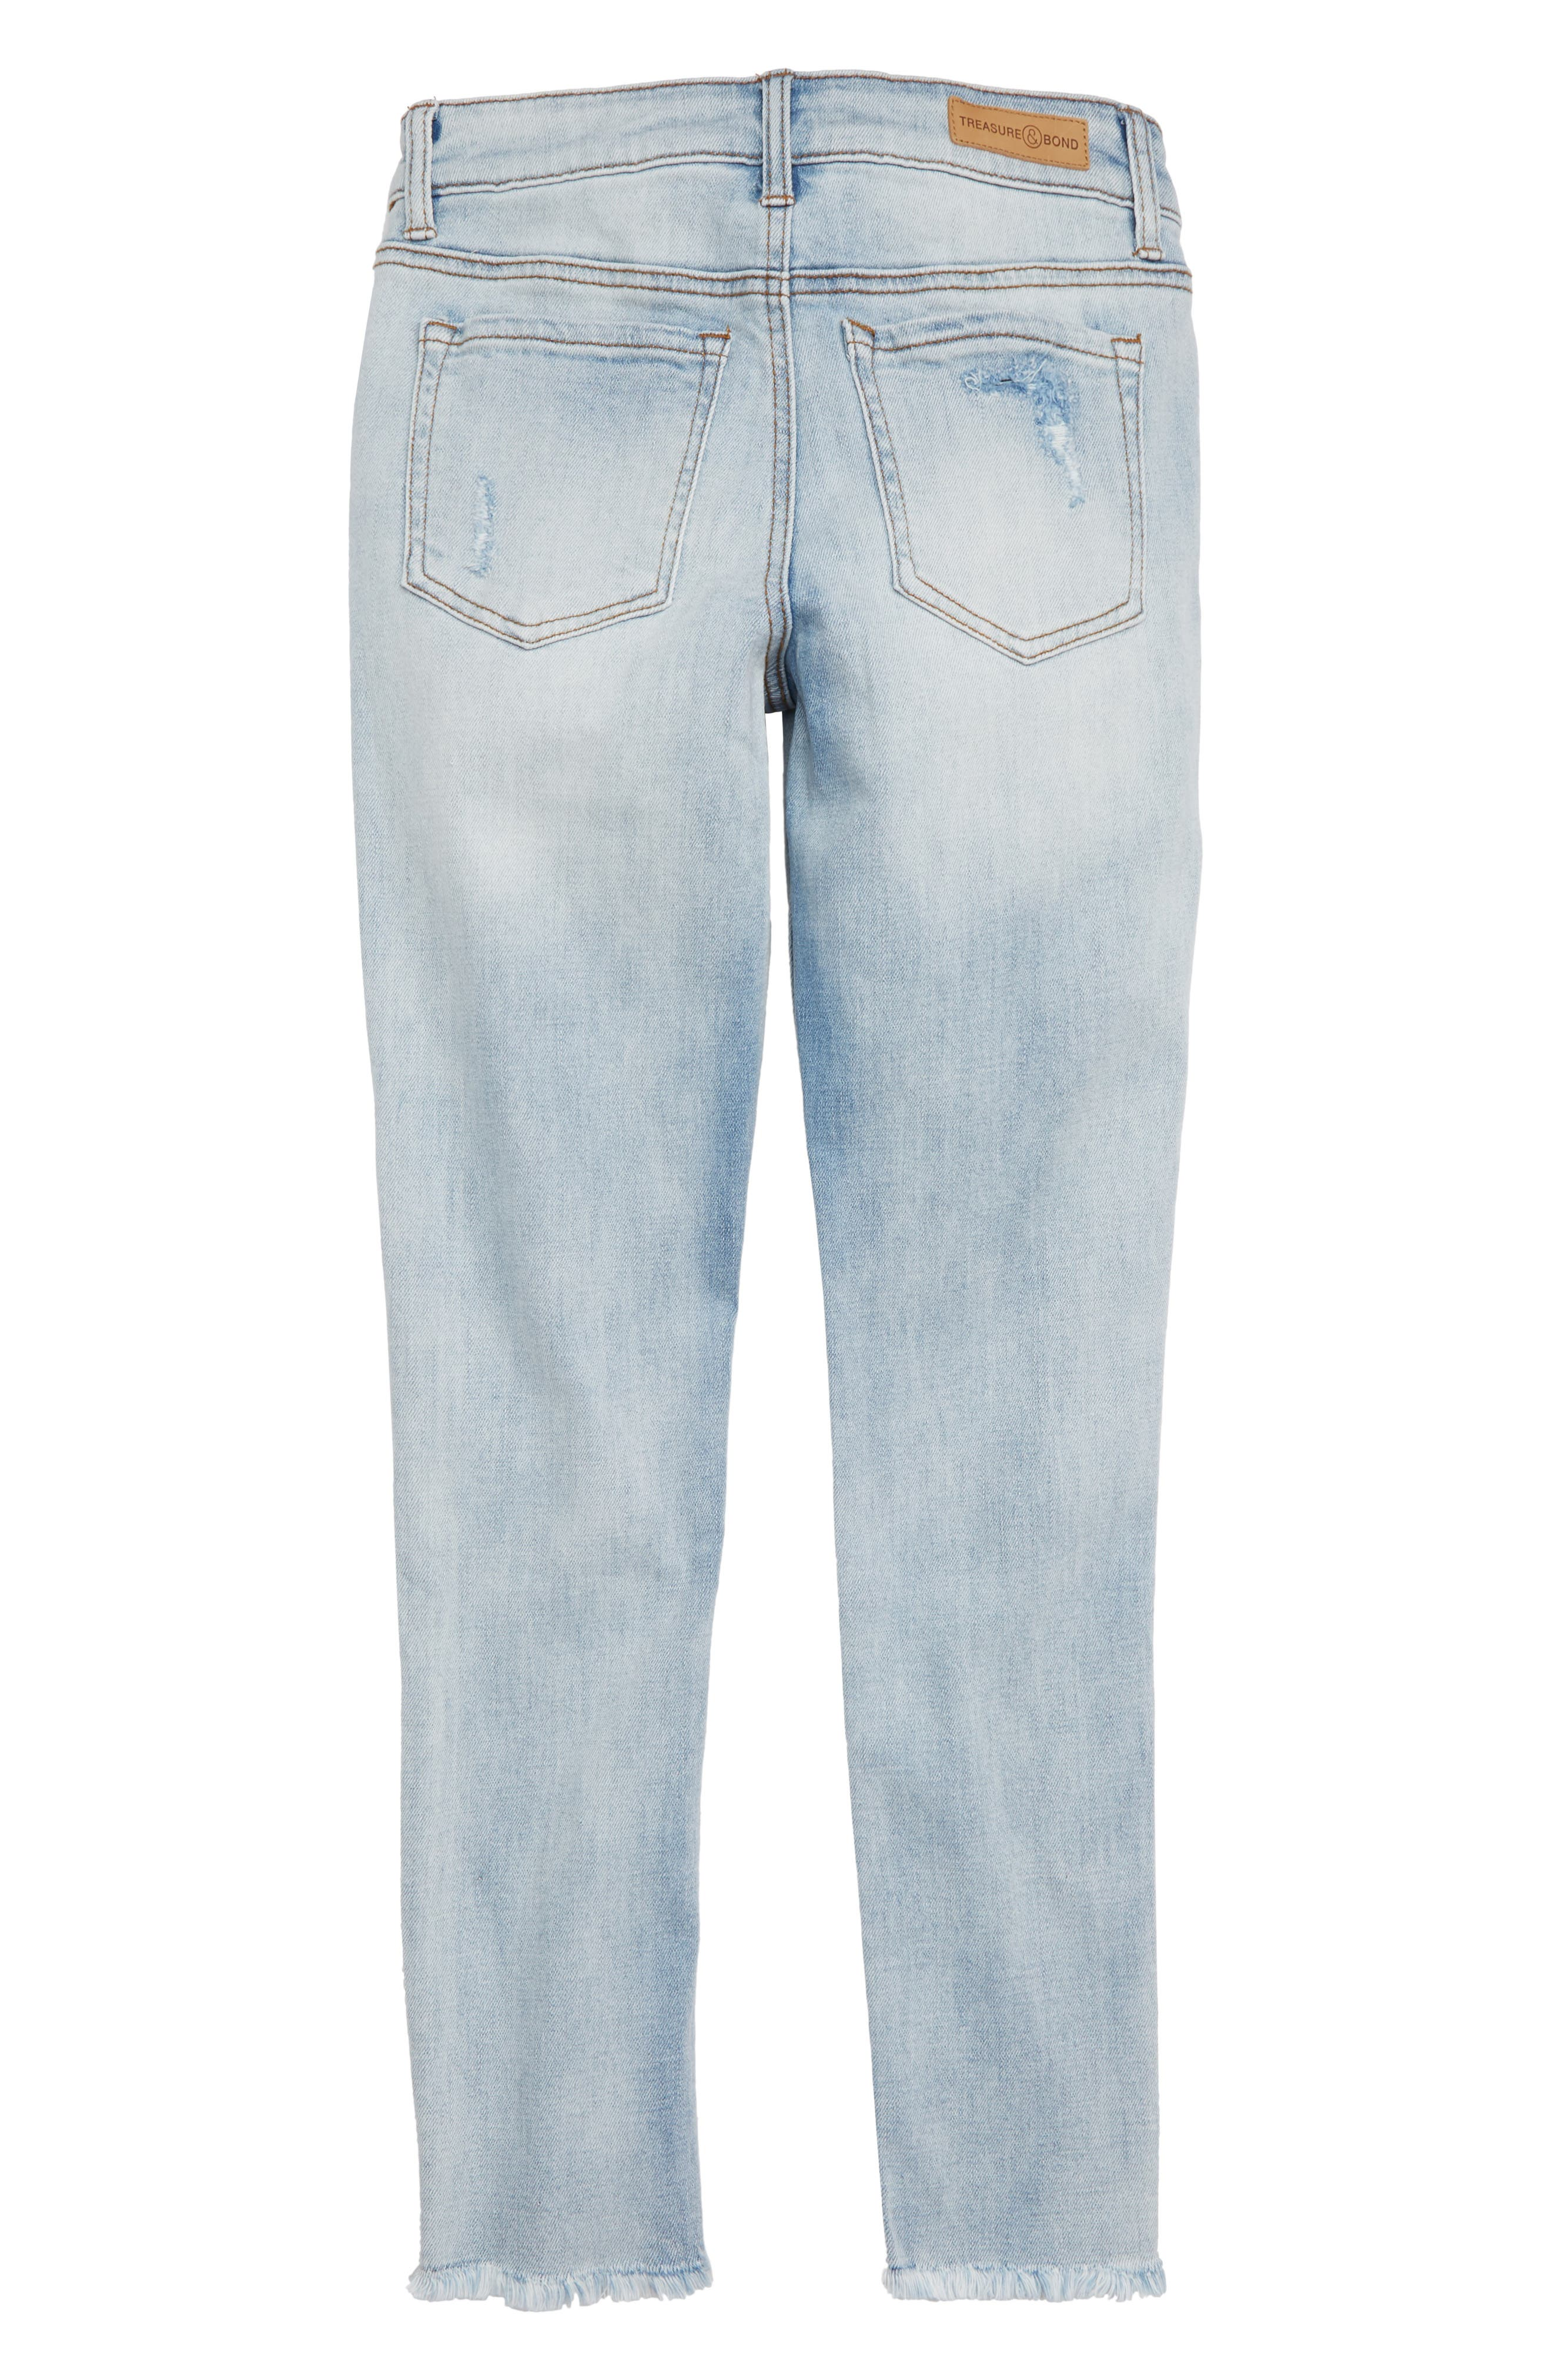 Repaired Girlfriend Jeans,                             Alternate thumbnail 2, color,                             450